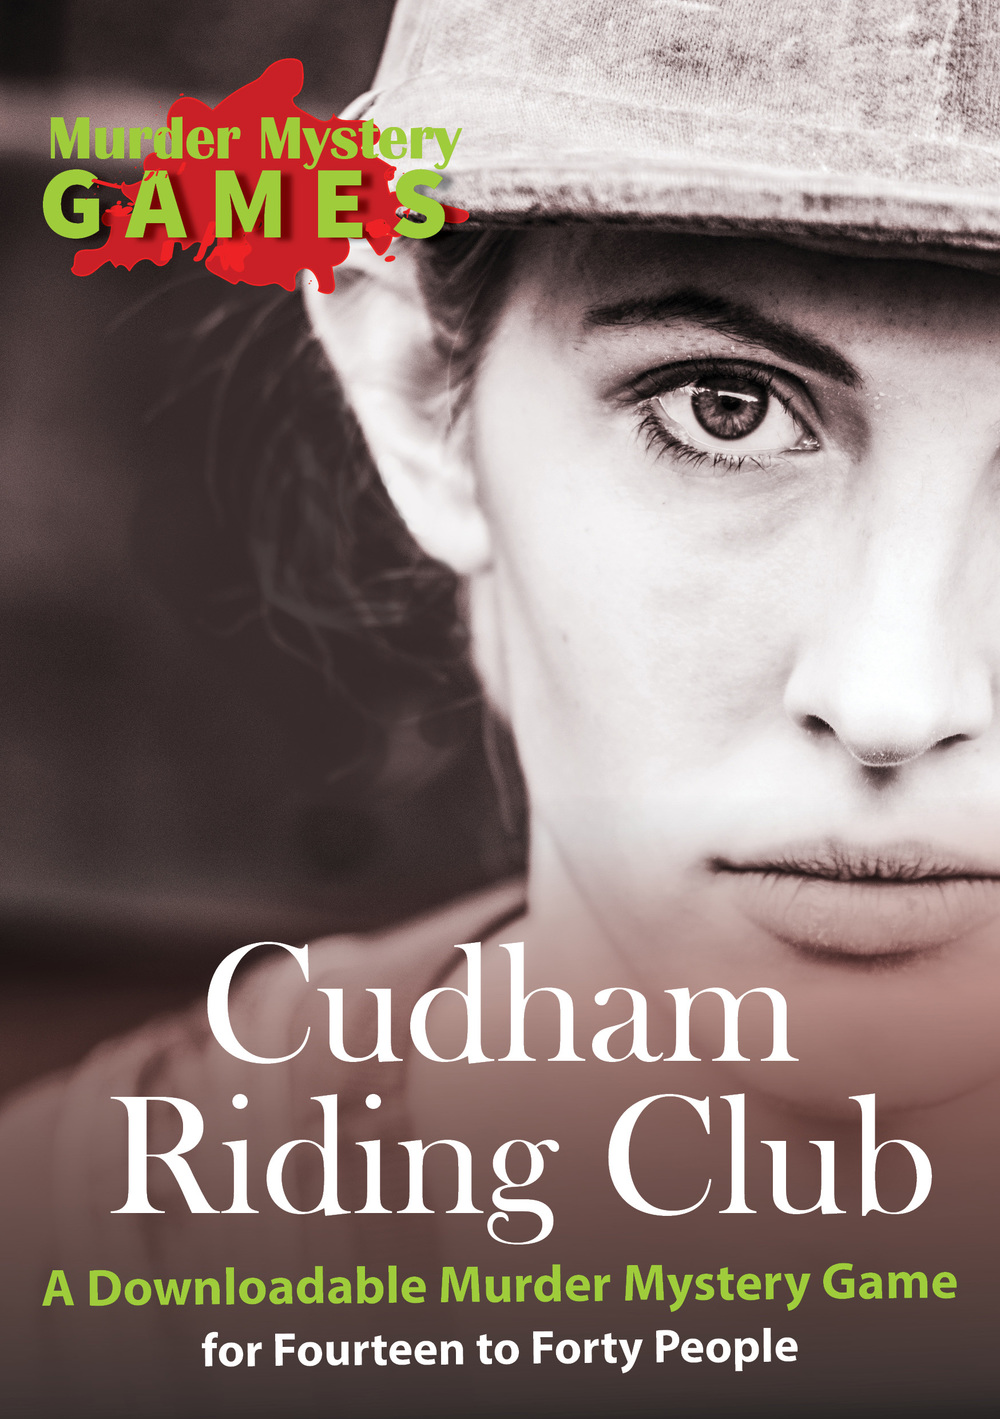 Cudham Riding Club - A Downloadable English Murder Mystery Game